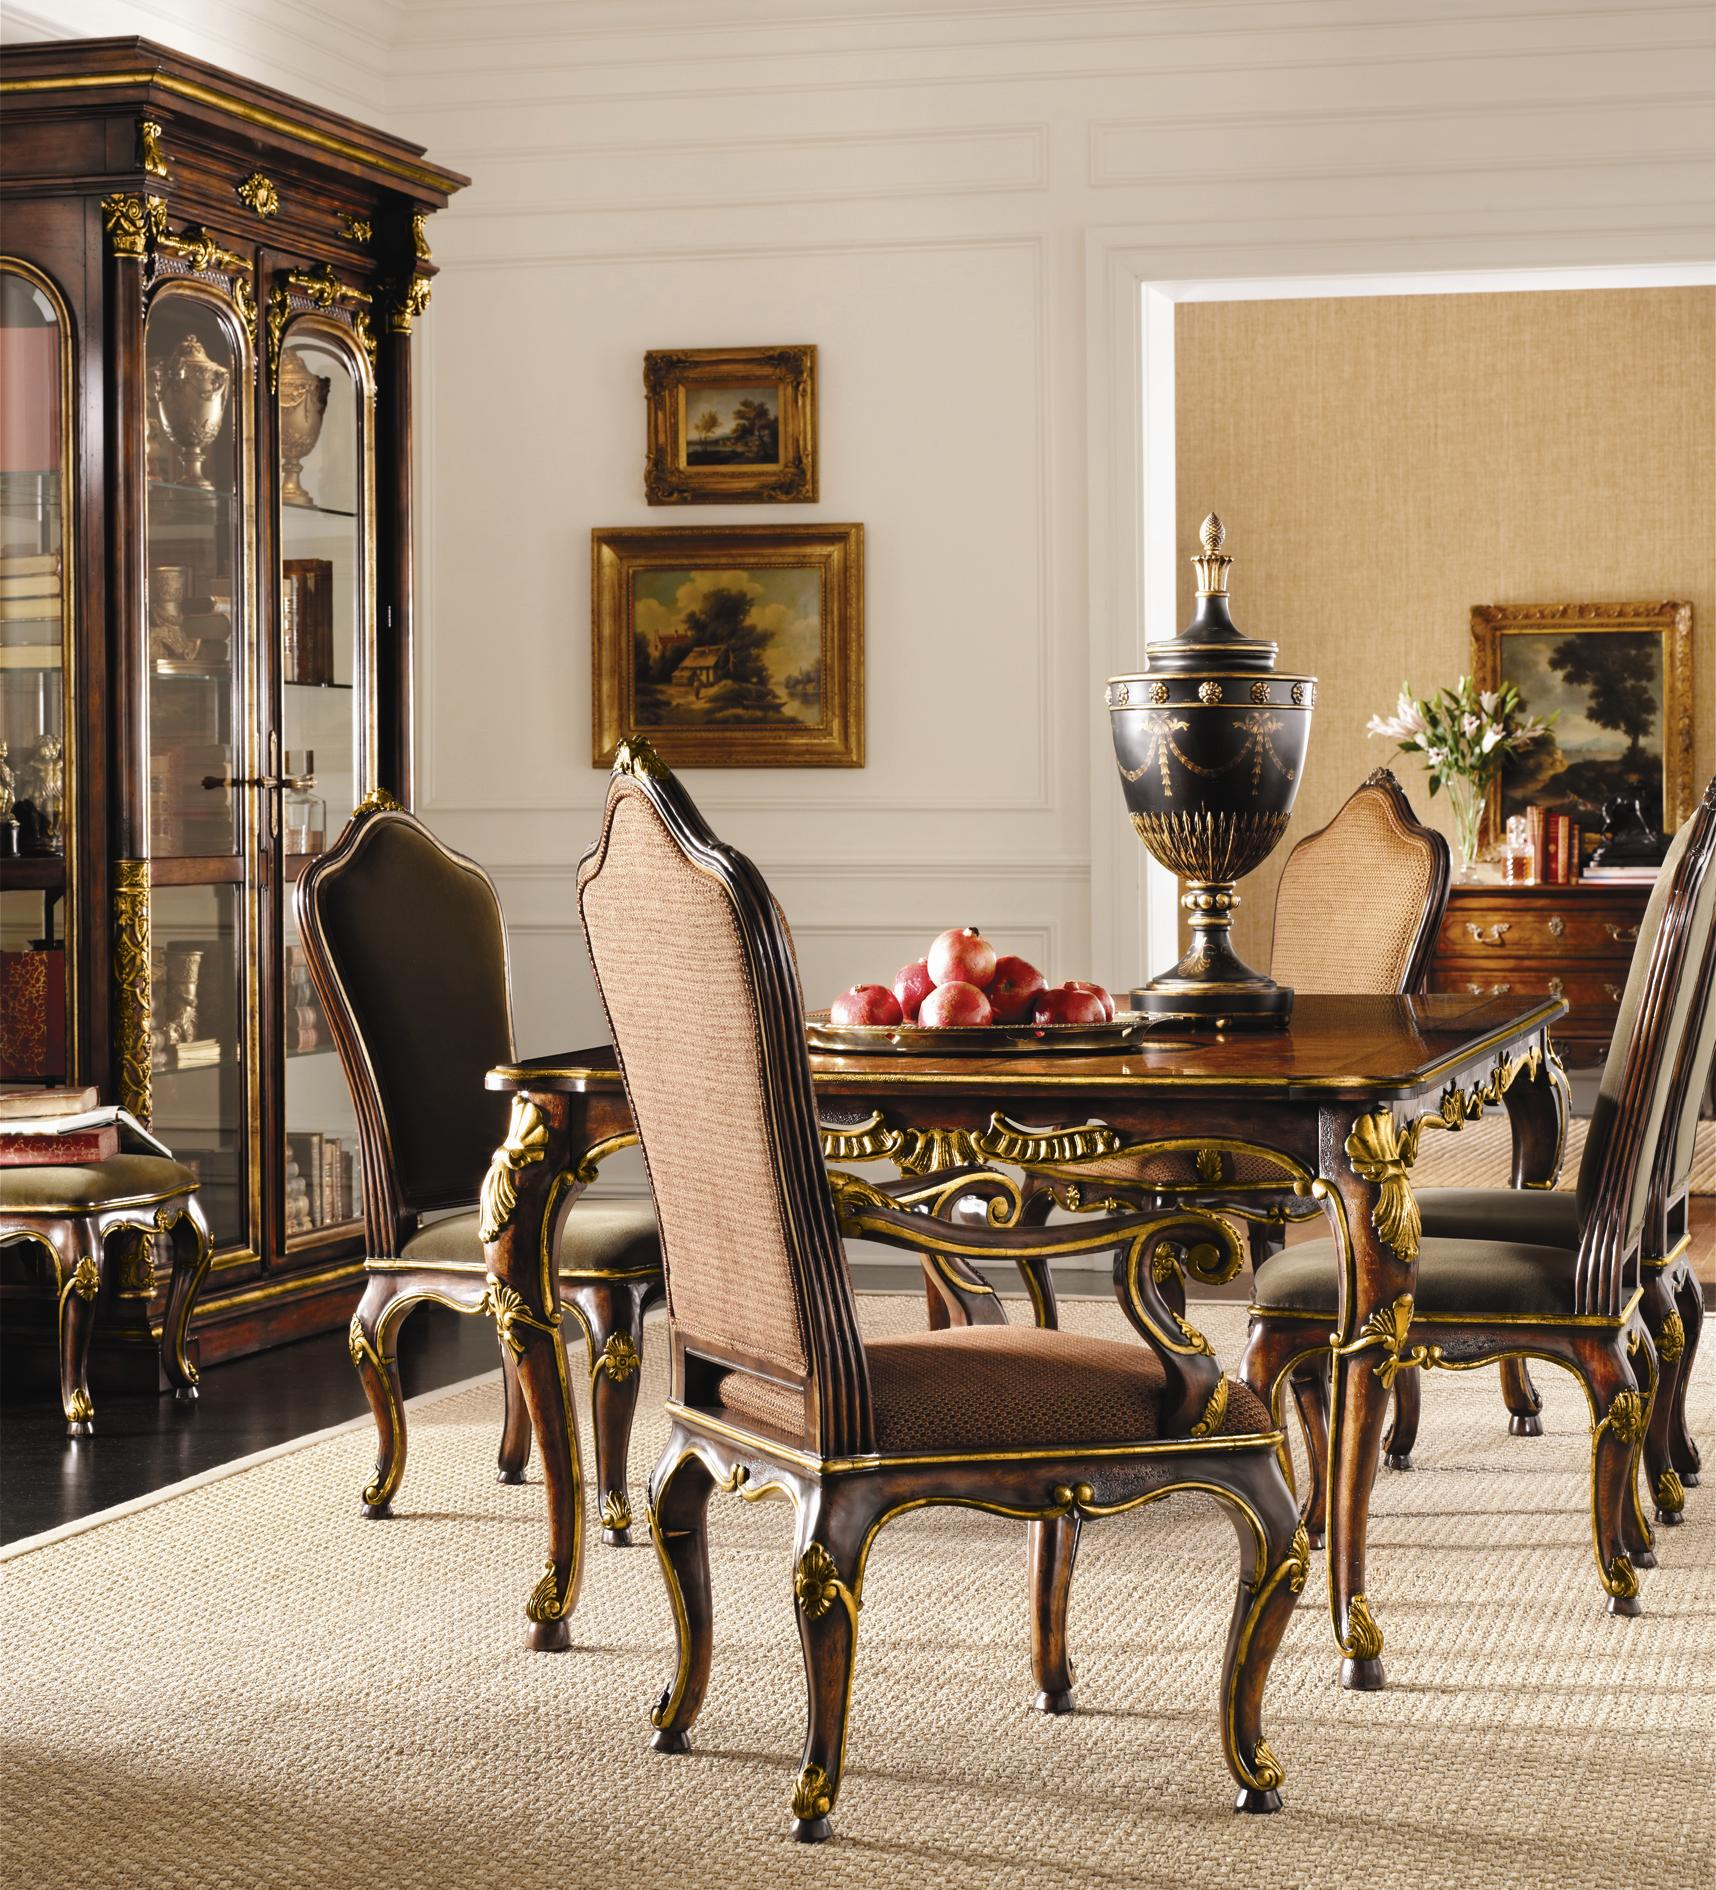 Henredon Arabesque Leg Table U0026 Upholstered Back Chairs Set | Sprintz  Furniture | Dining 7 (or More) Piece Sets Nashville, Franklin, And Greater  Tennessee